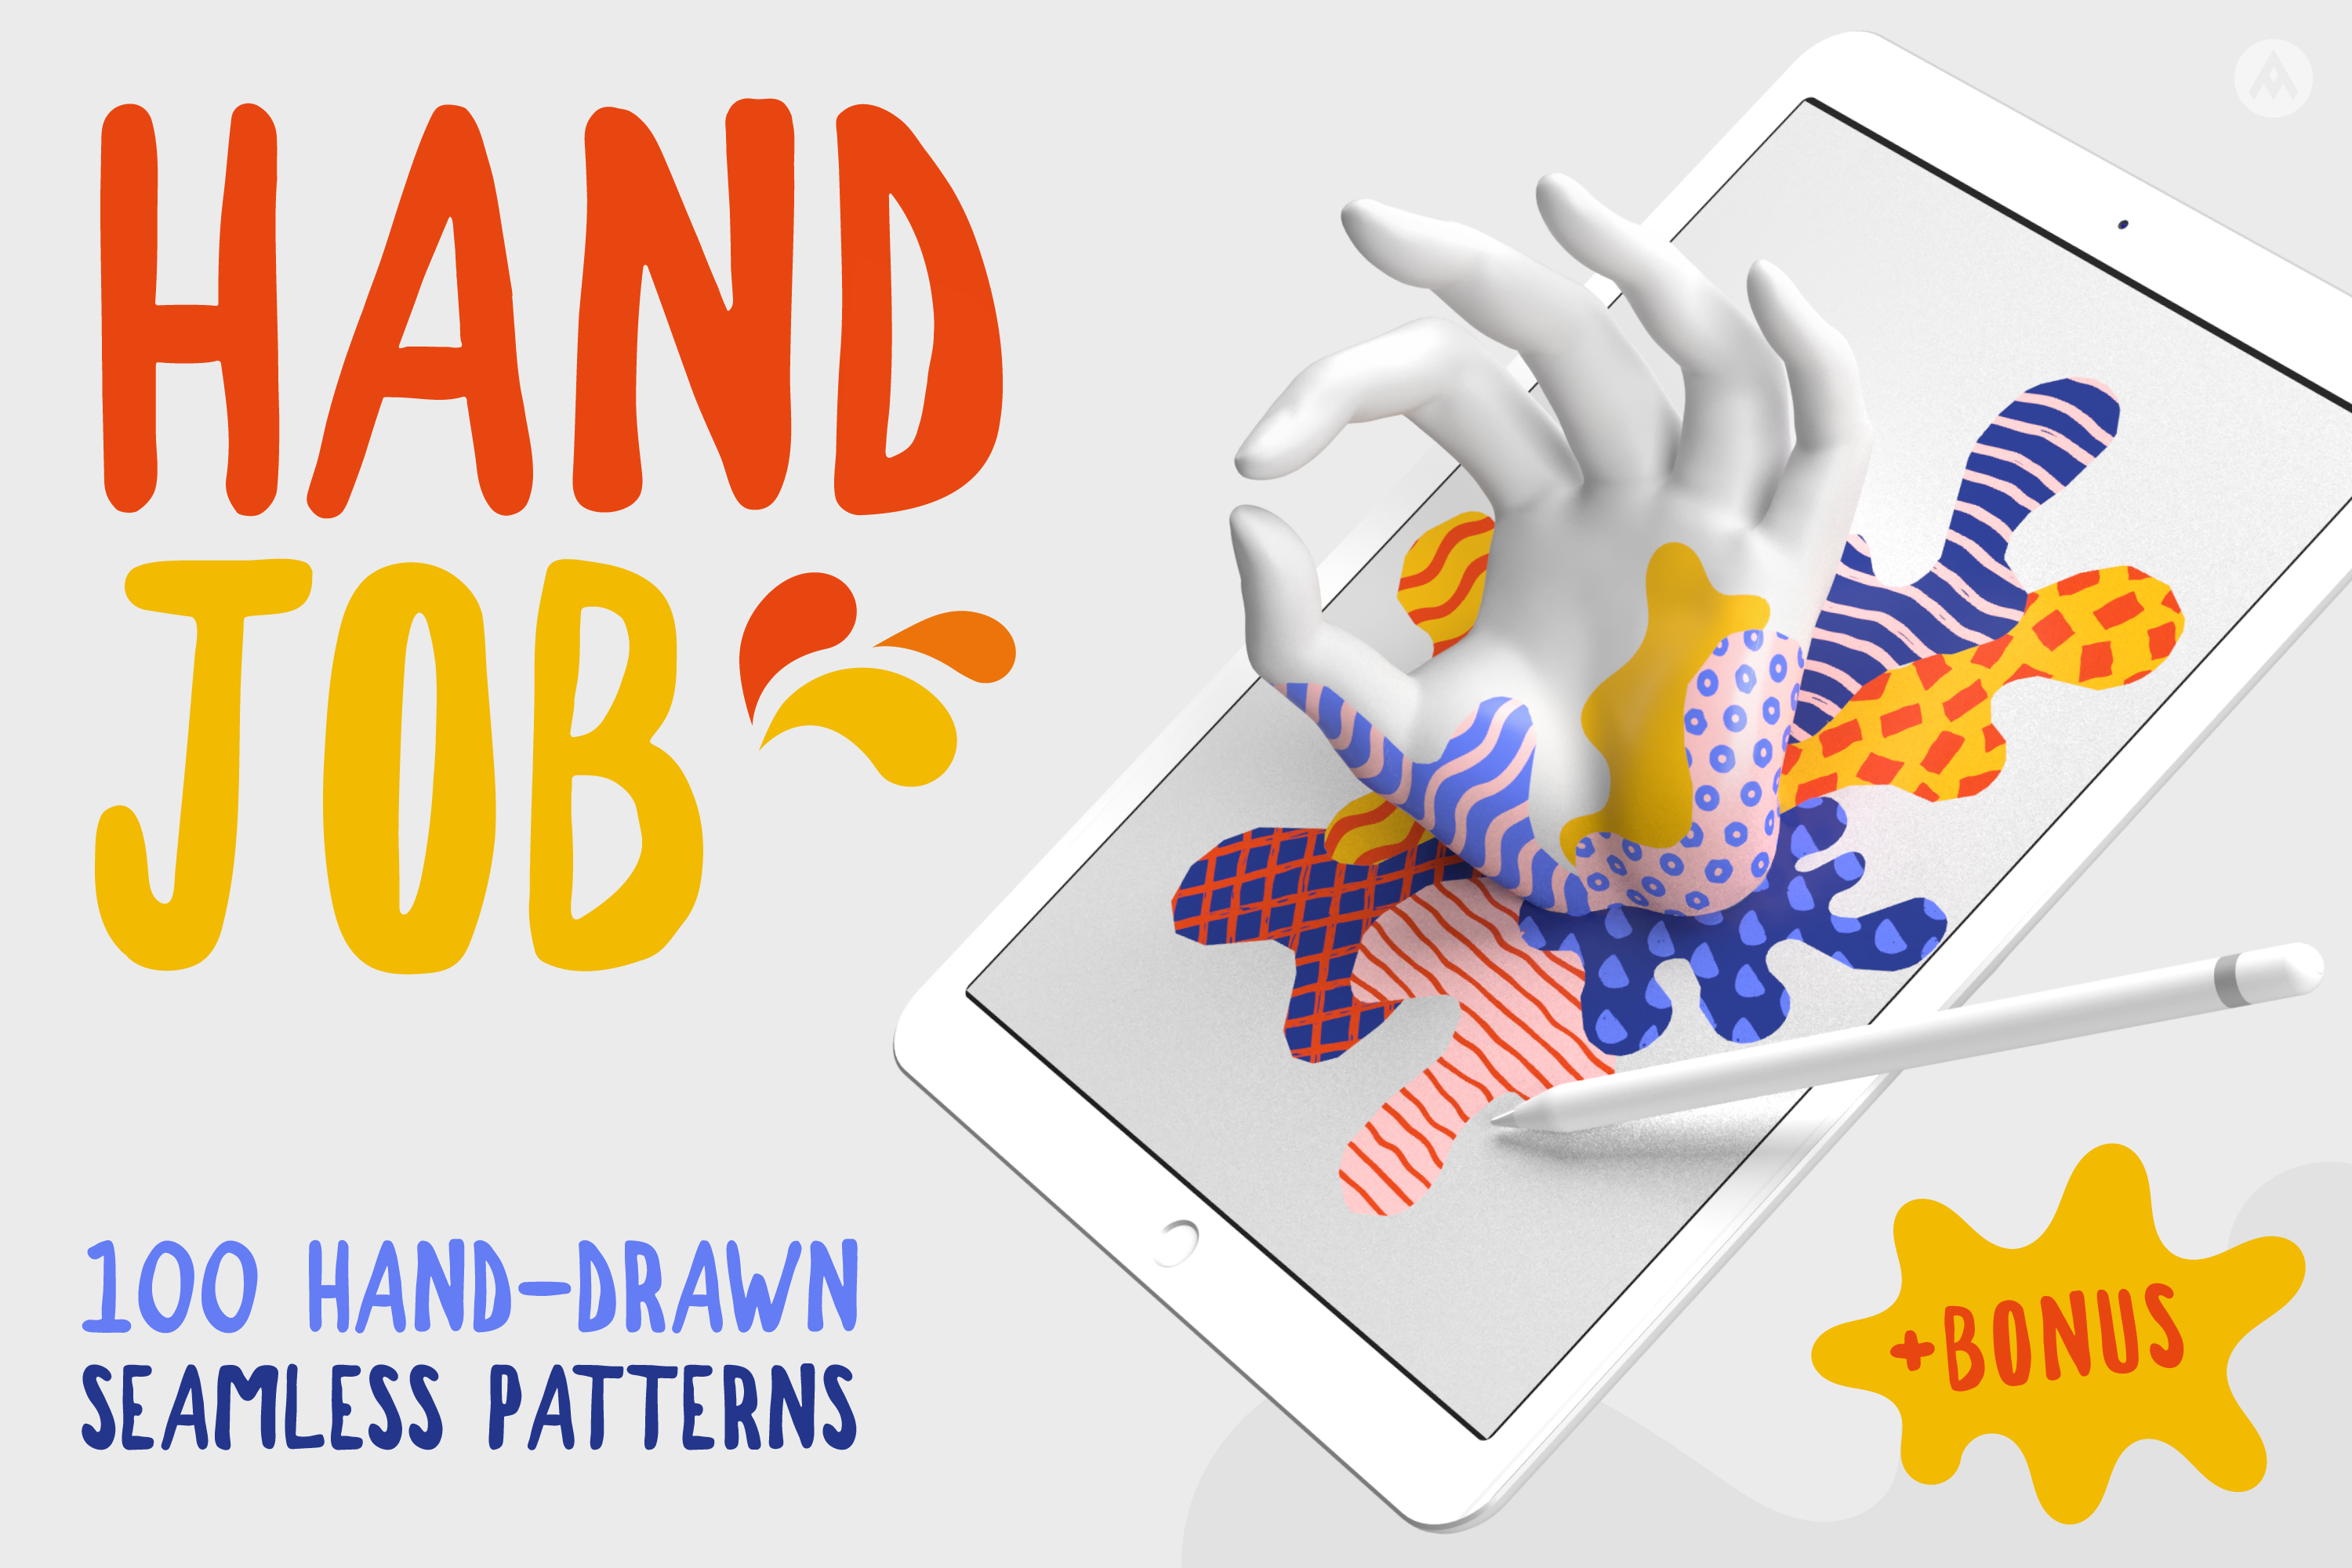 100 Hand-drawn seamless patterns collection example image 1